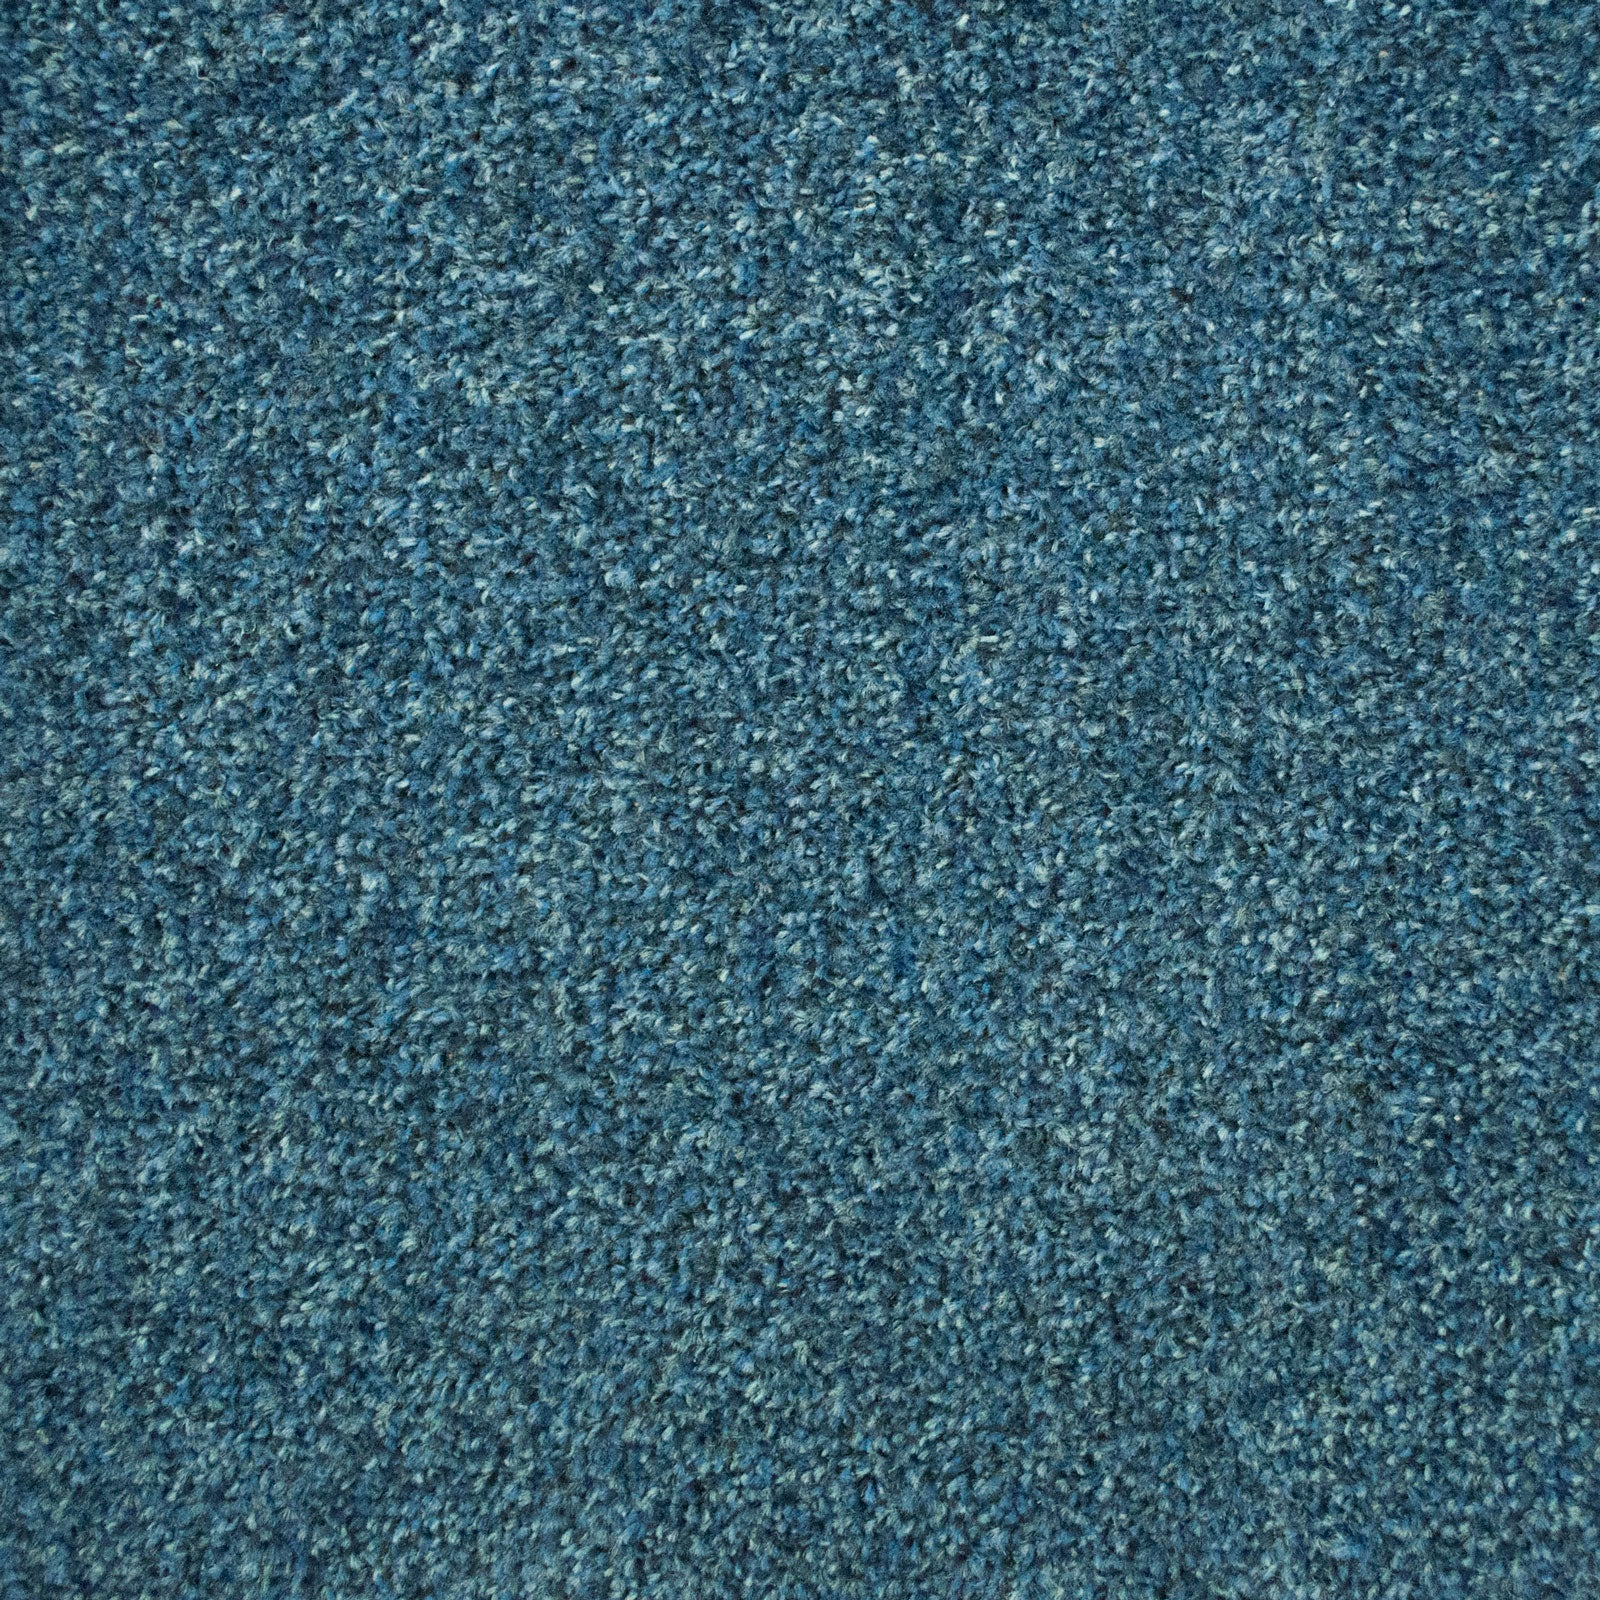 Ocean Blue Liberty Heathers Twist Carpet - Far